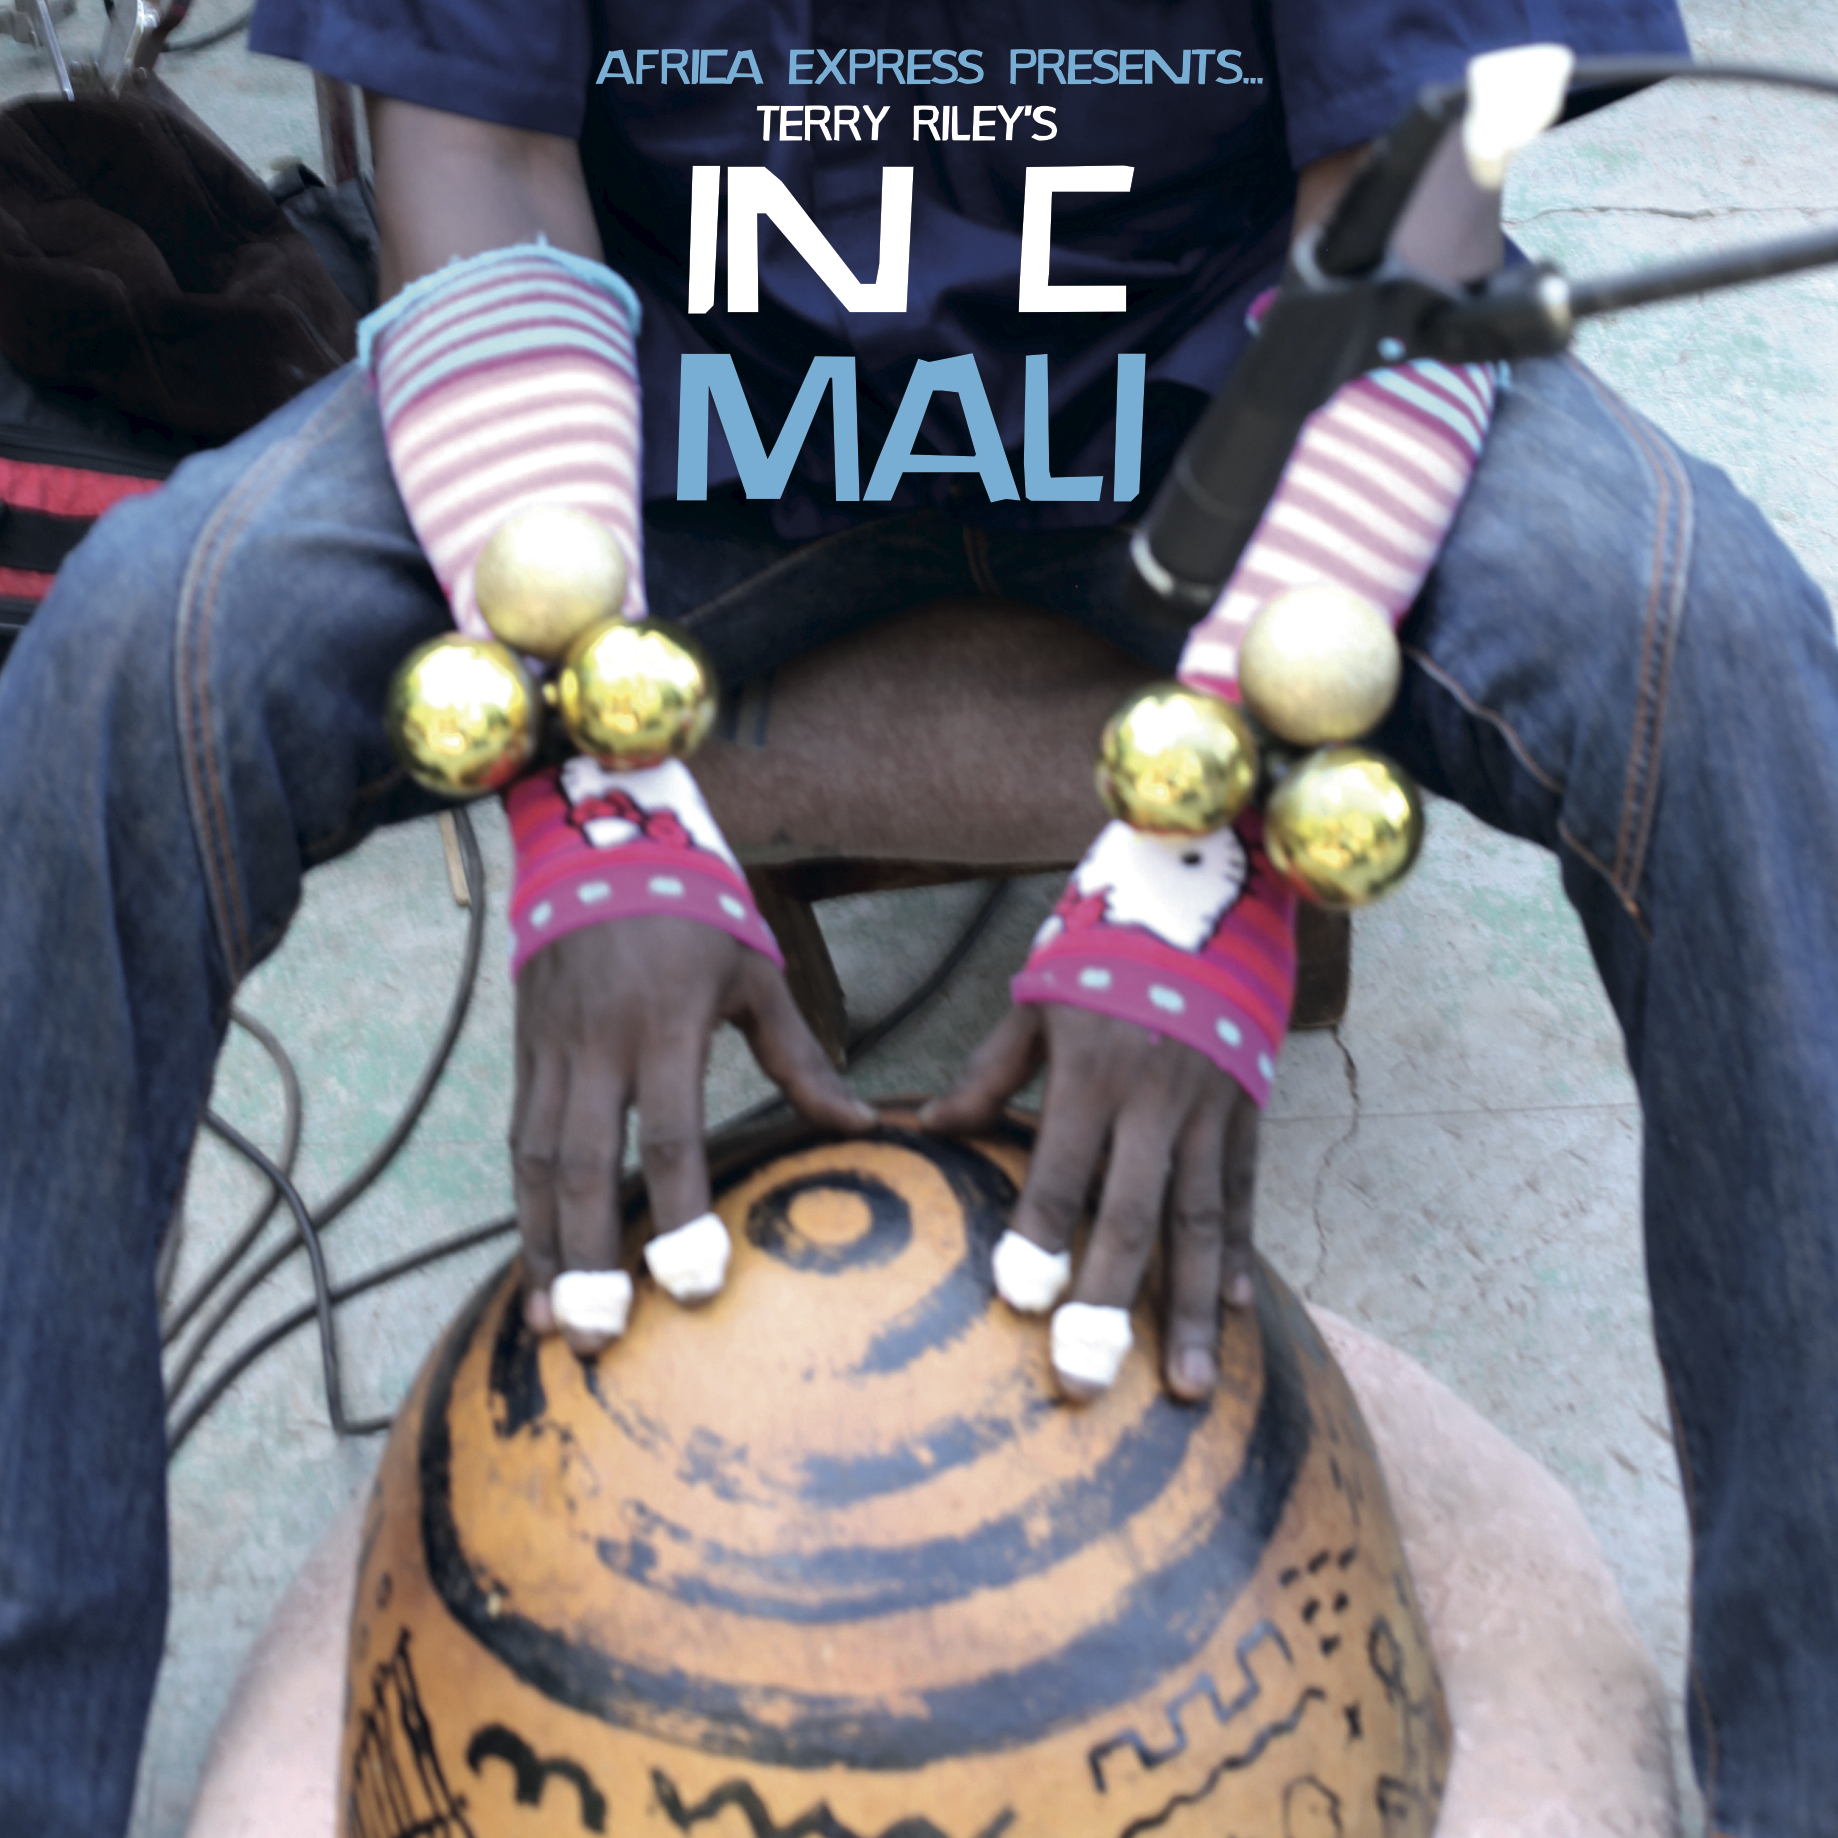 Africa Express Presents... Terry Riley's In C Mali - CD - Africa Express